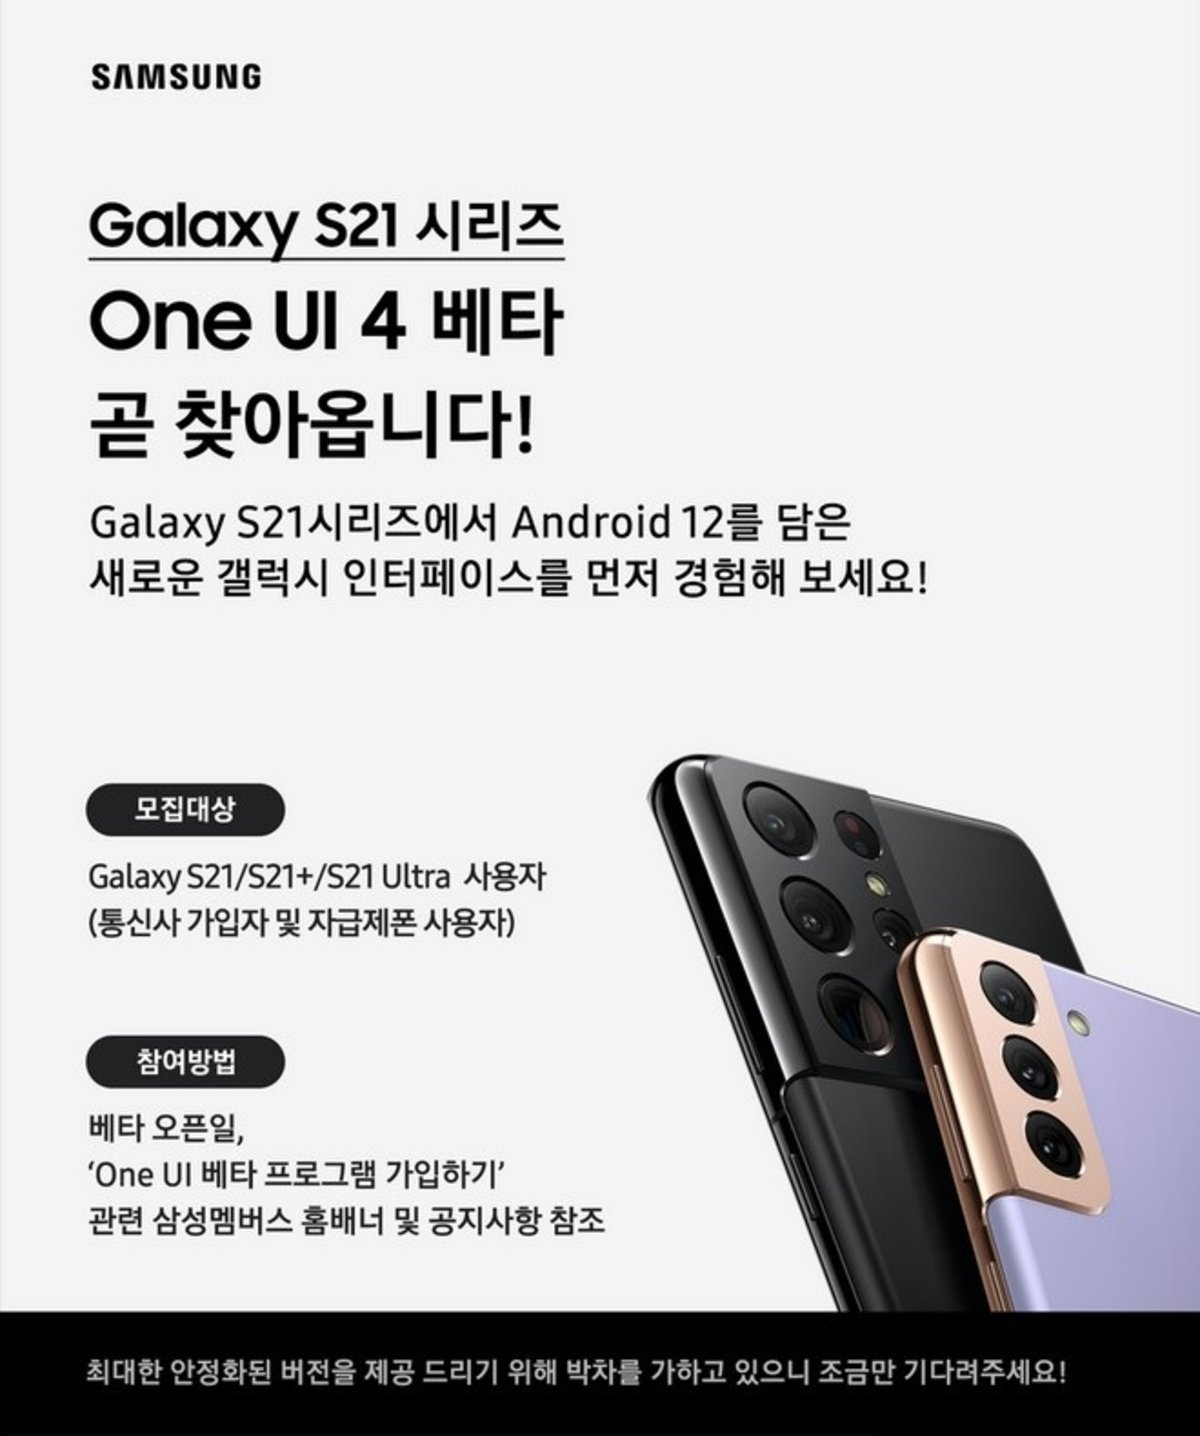 Samsung One UI 4 with Android 12